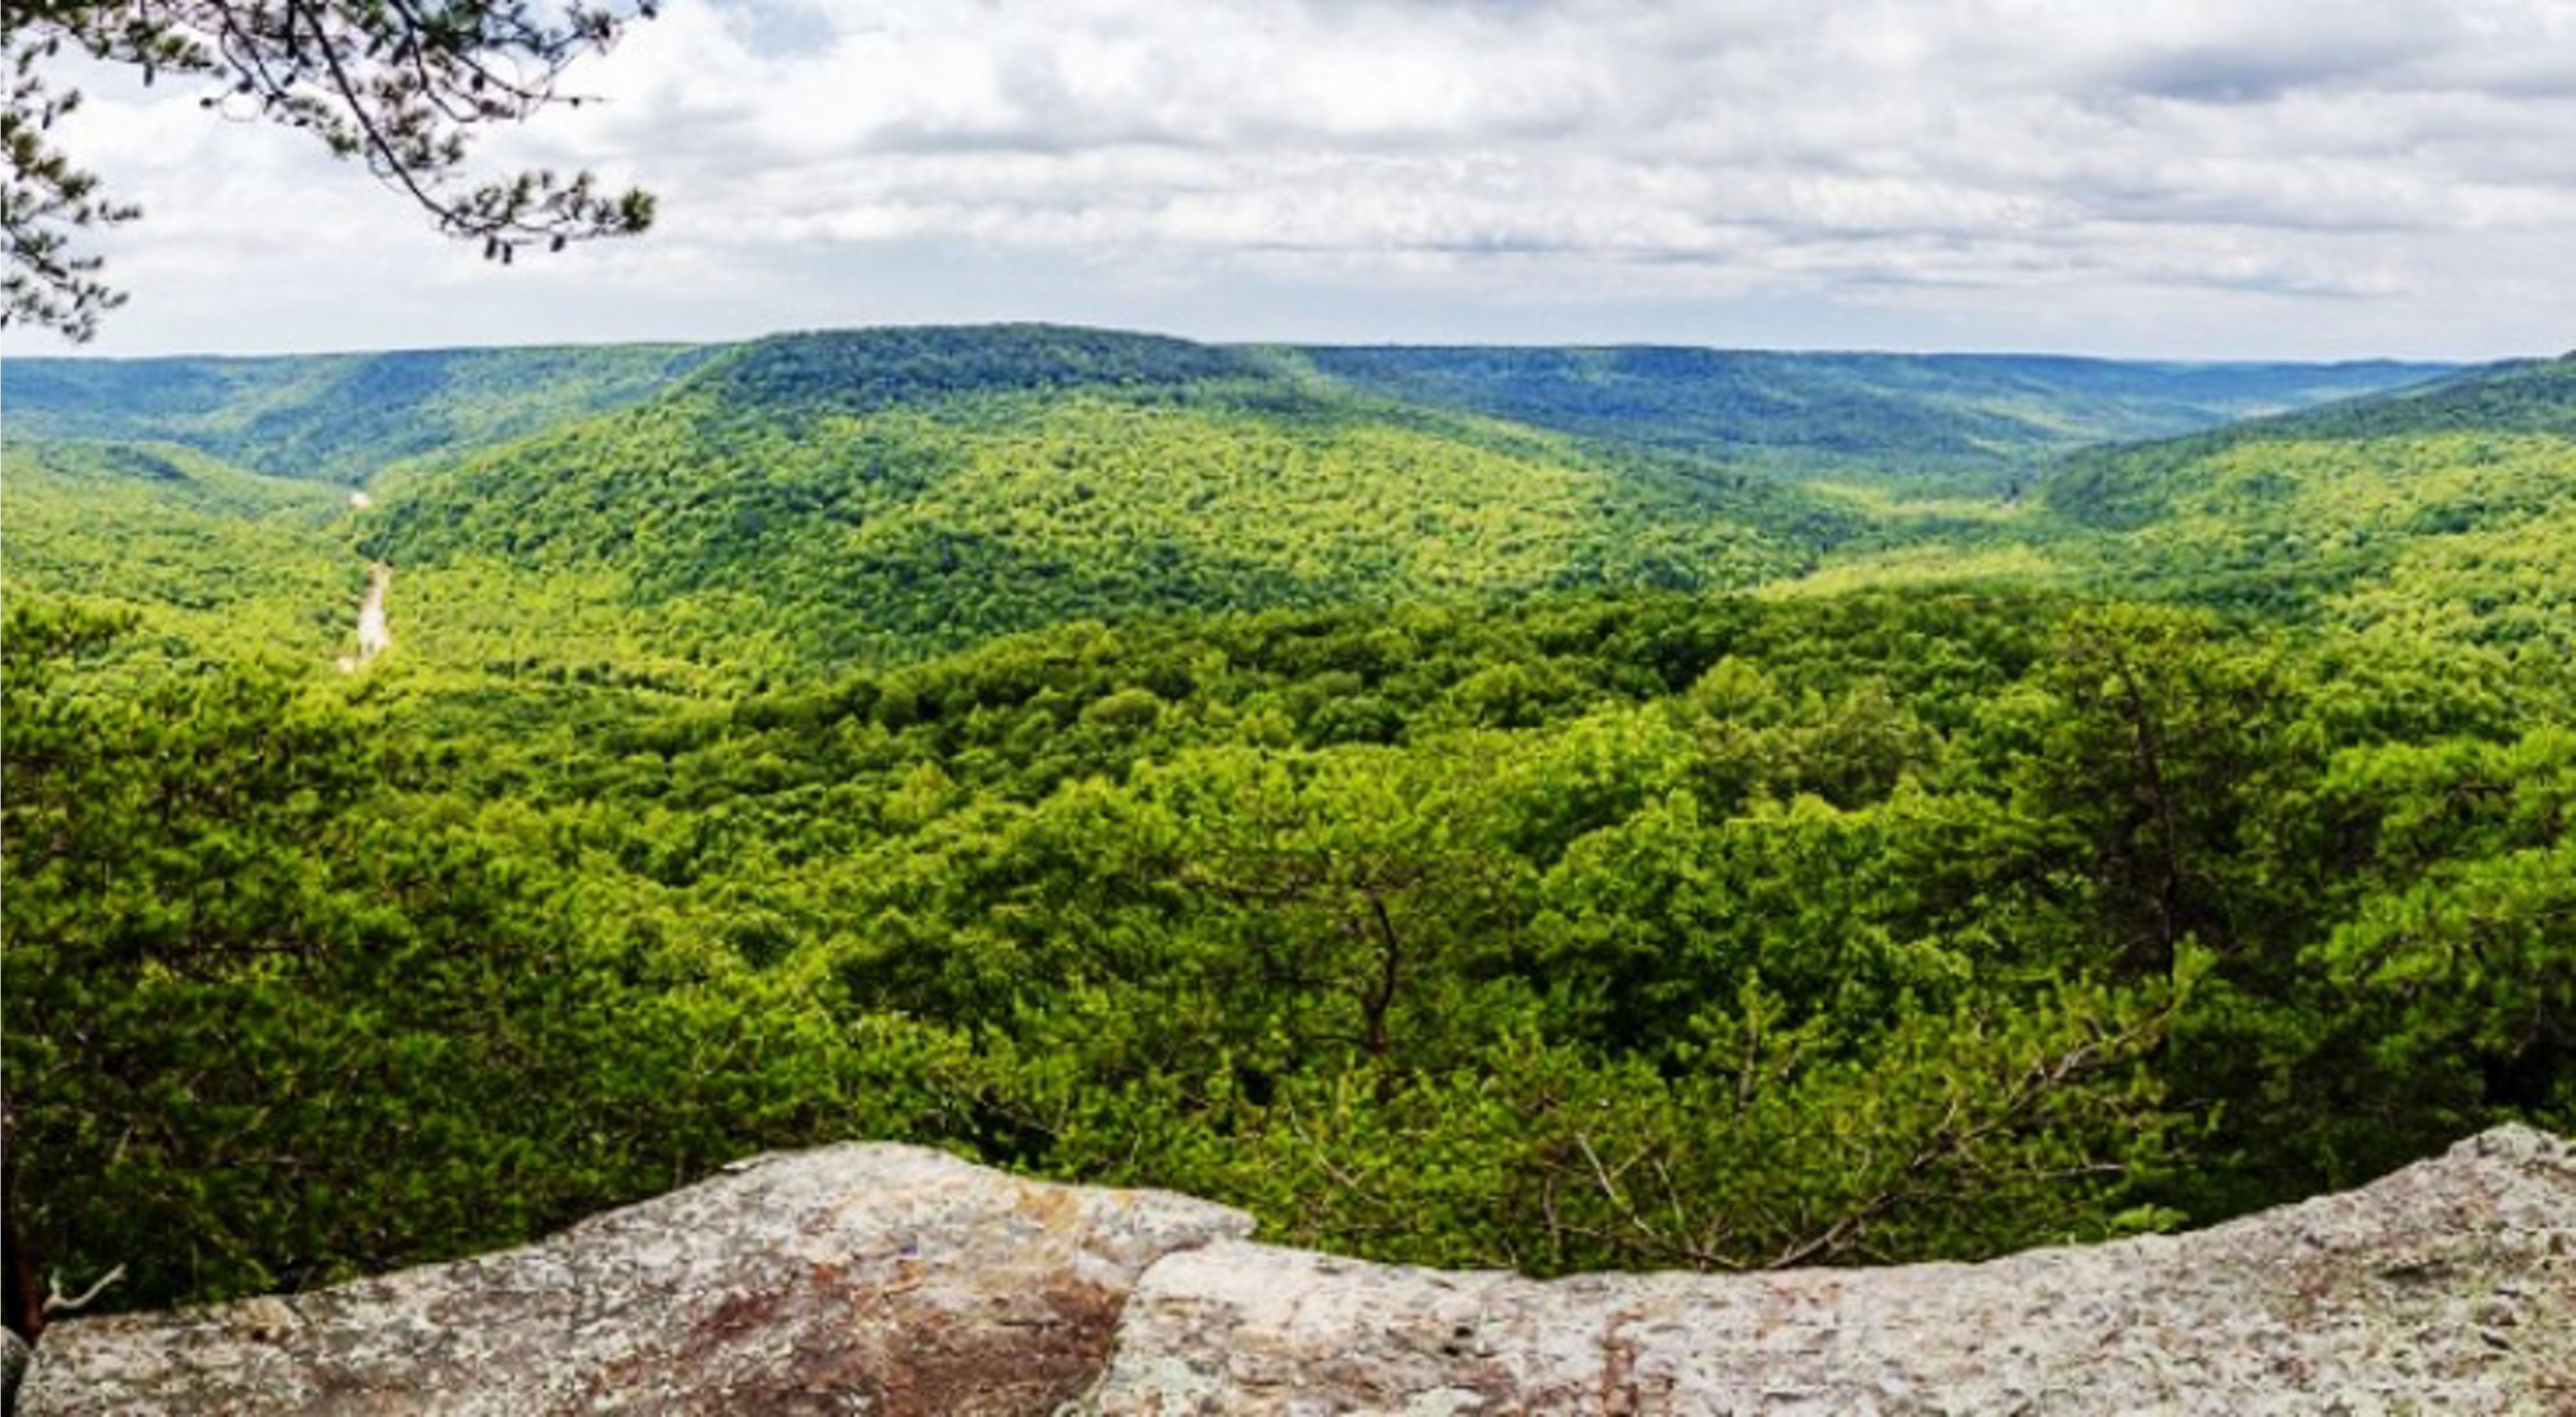 A rock outcrop looks out on a dense, green forested valley.